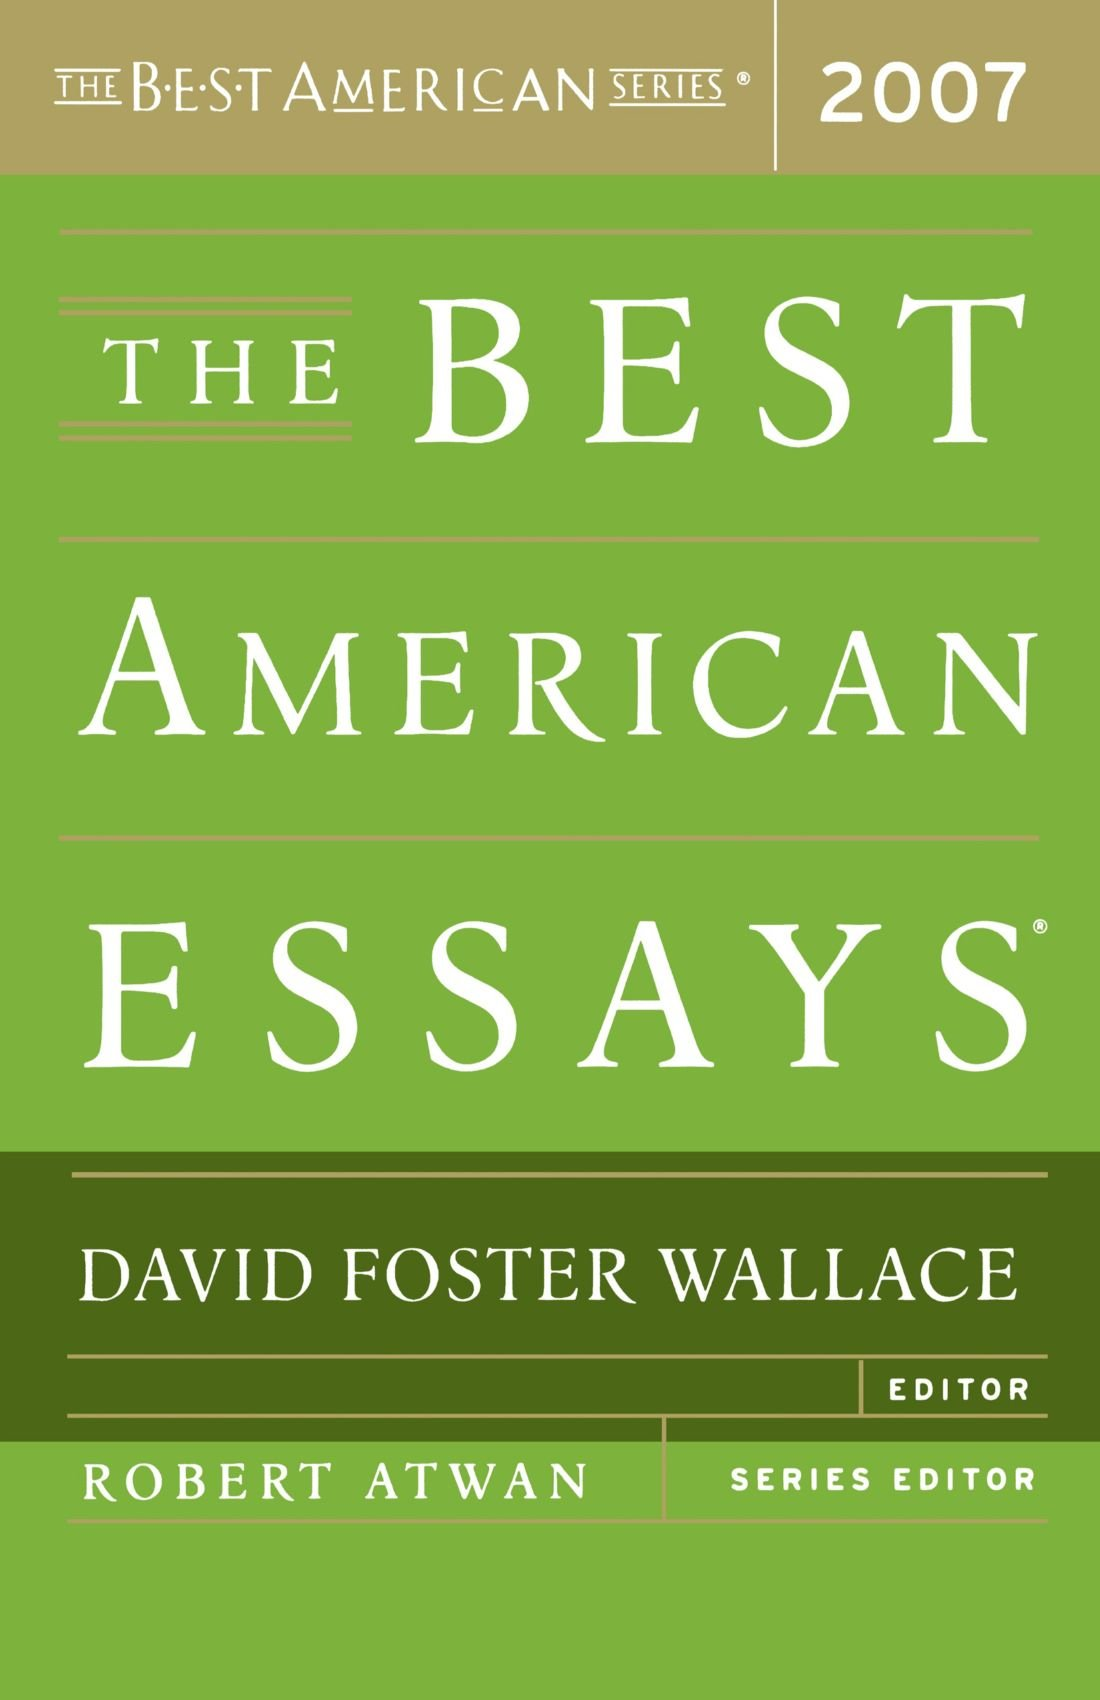 the best american essays the best american series ® david  the best american essays 2007 the best american series ® david foster wallace robert atwan 9780618709274 com books